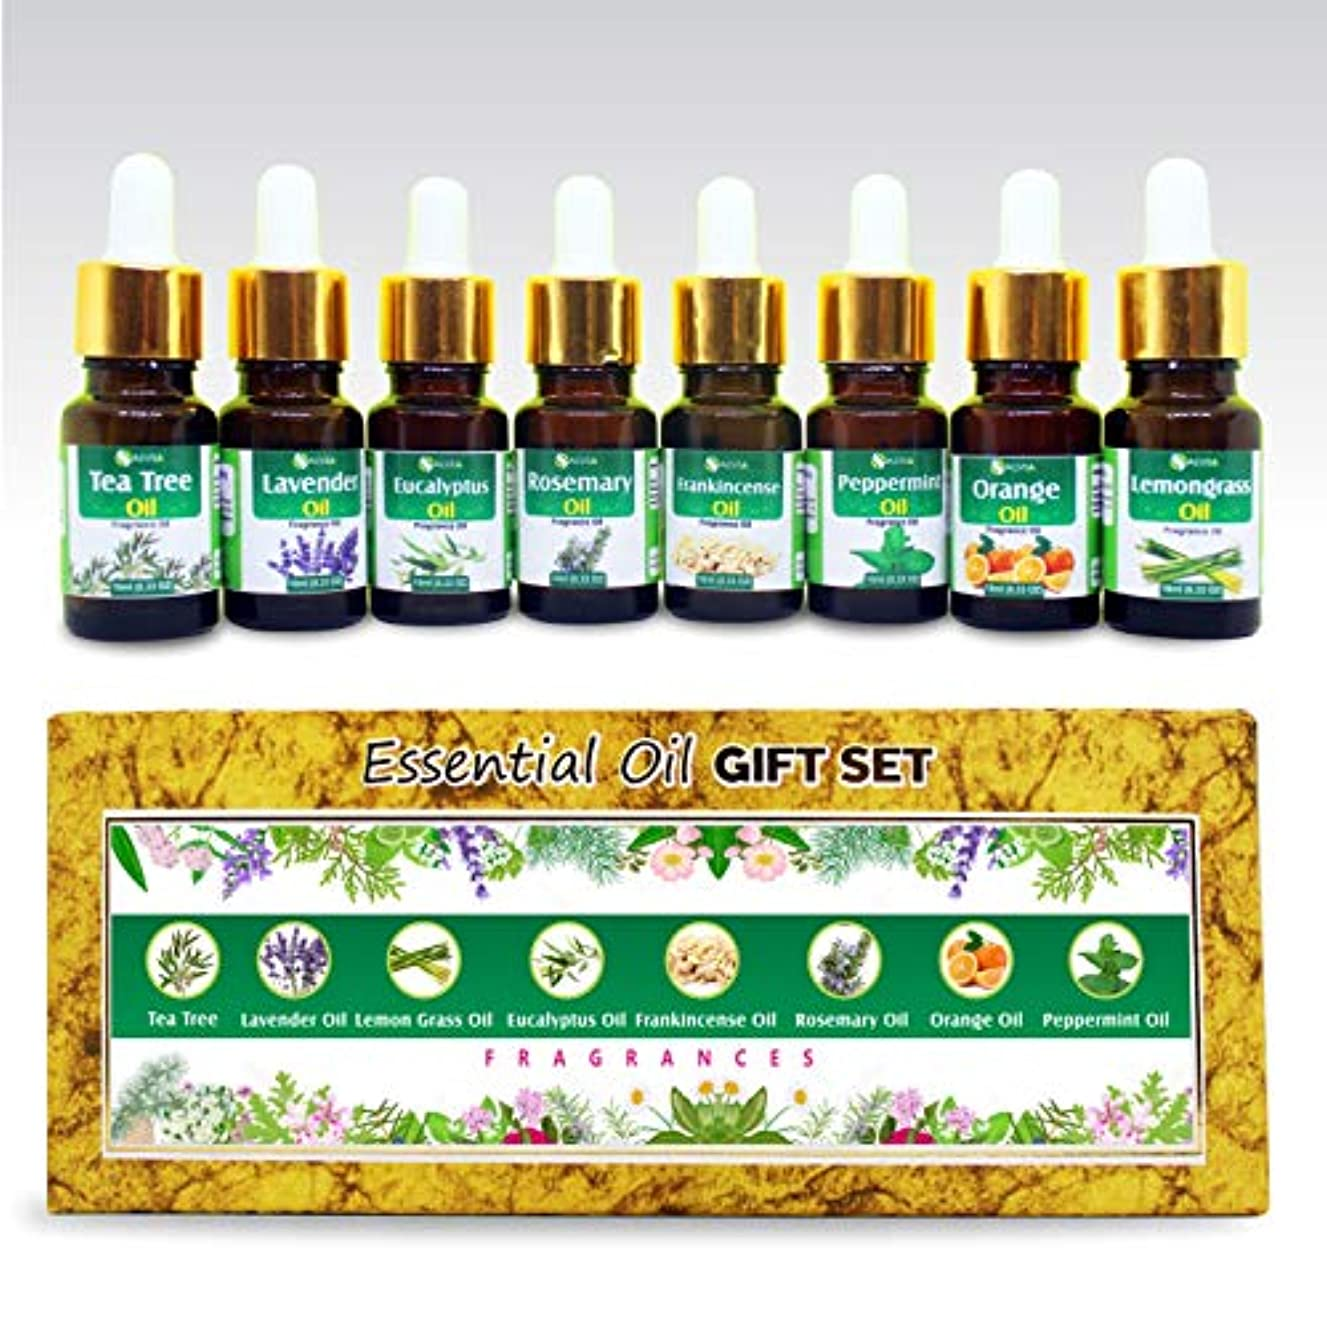 雇う書き込み週間Aromatherapy Fragrance Oils - Pack of 8 Essential Oils 100% Natural Therapeutic Oils - 10 ML each (Tea Tree, Lavender, Eucalyptus, Frankincense, Lemongrass, Rosemary, Orange, Peppermint) Gift Set